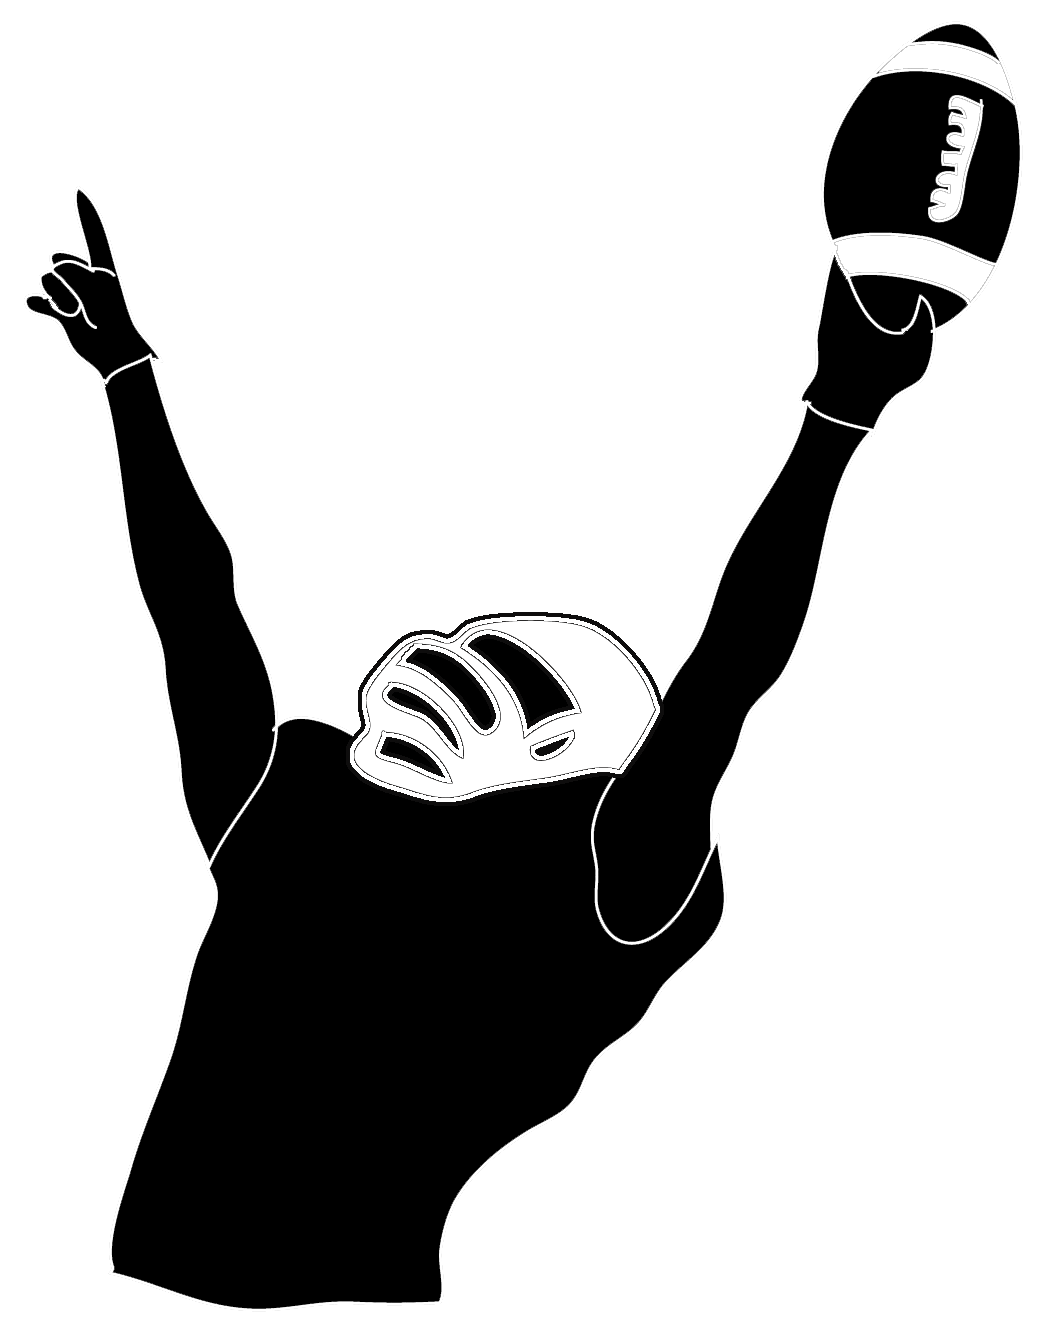 Packers football clipart black and white download victory-football-player | Vinyl projects | Pinterest | Football ... black and white download